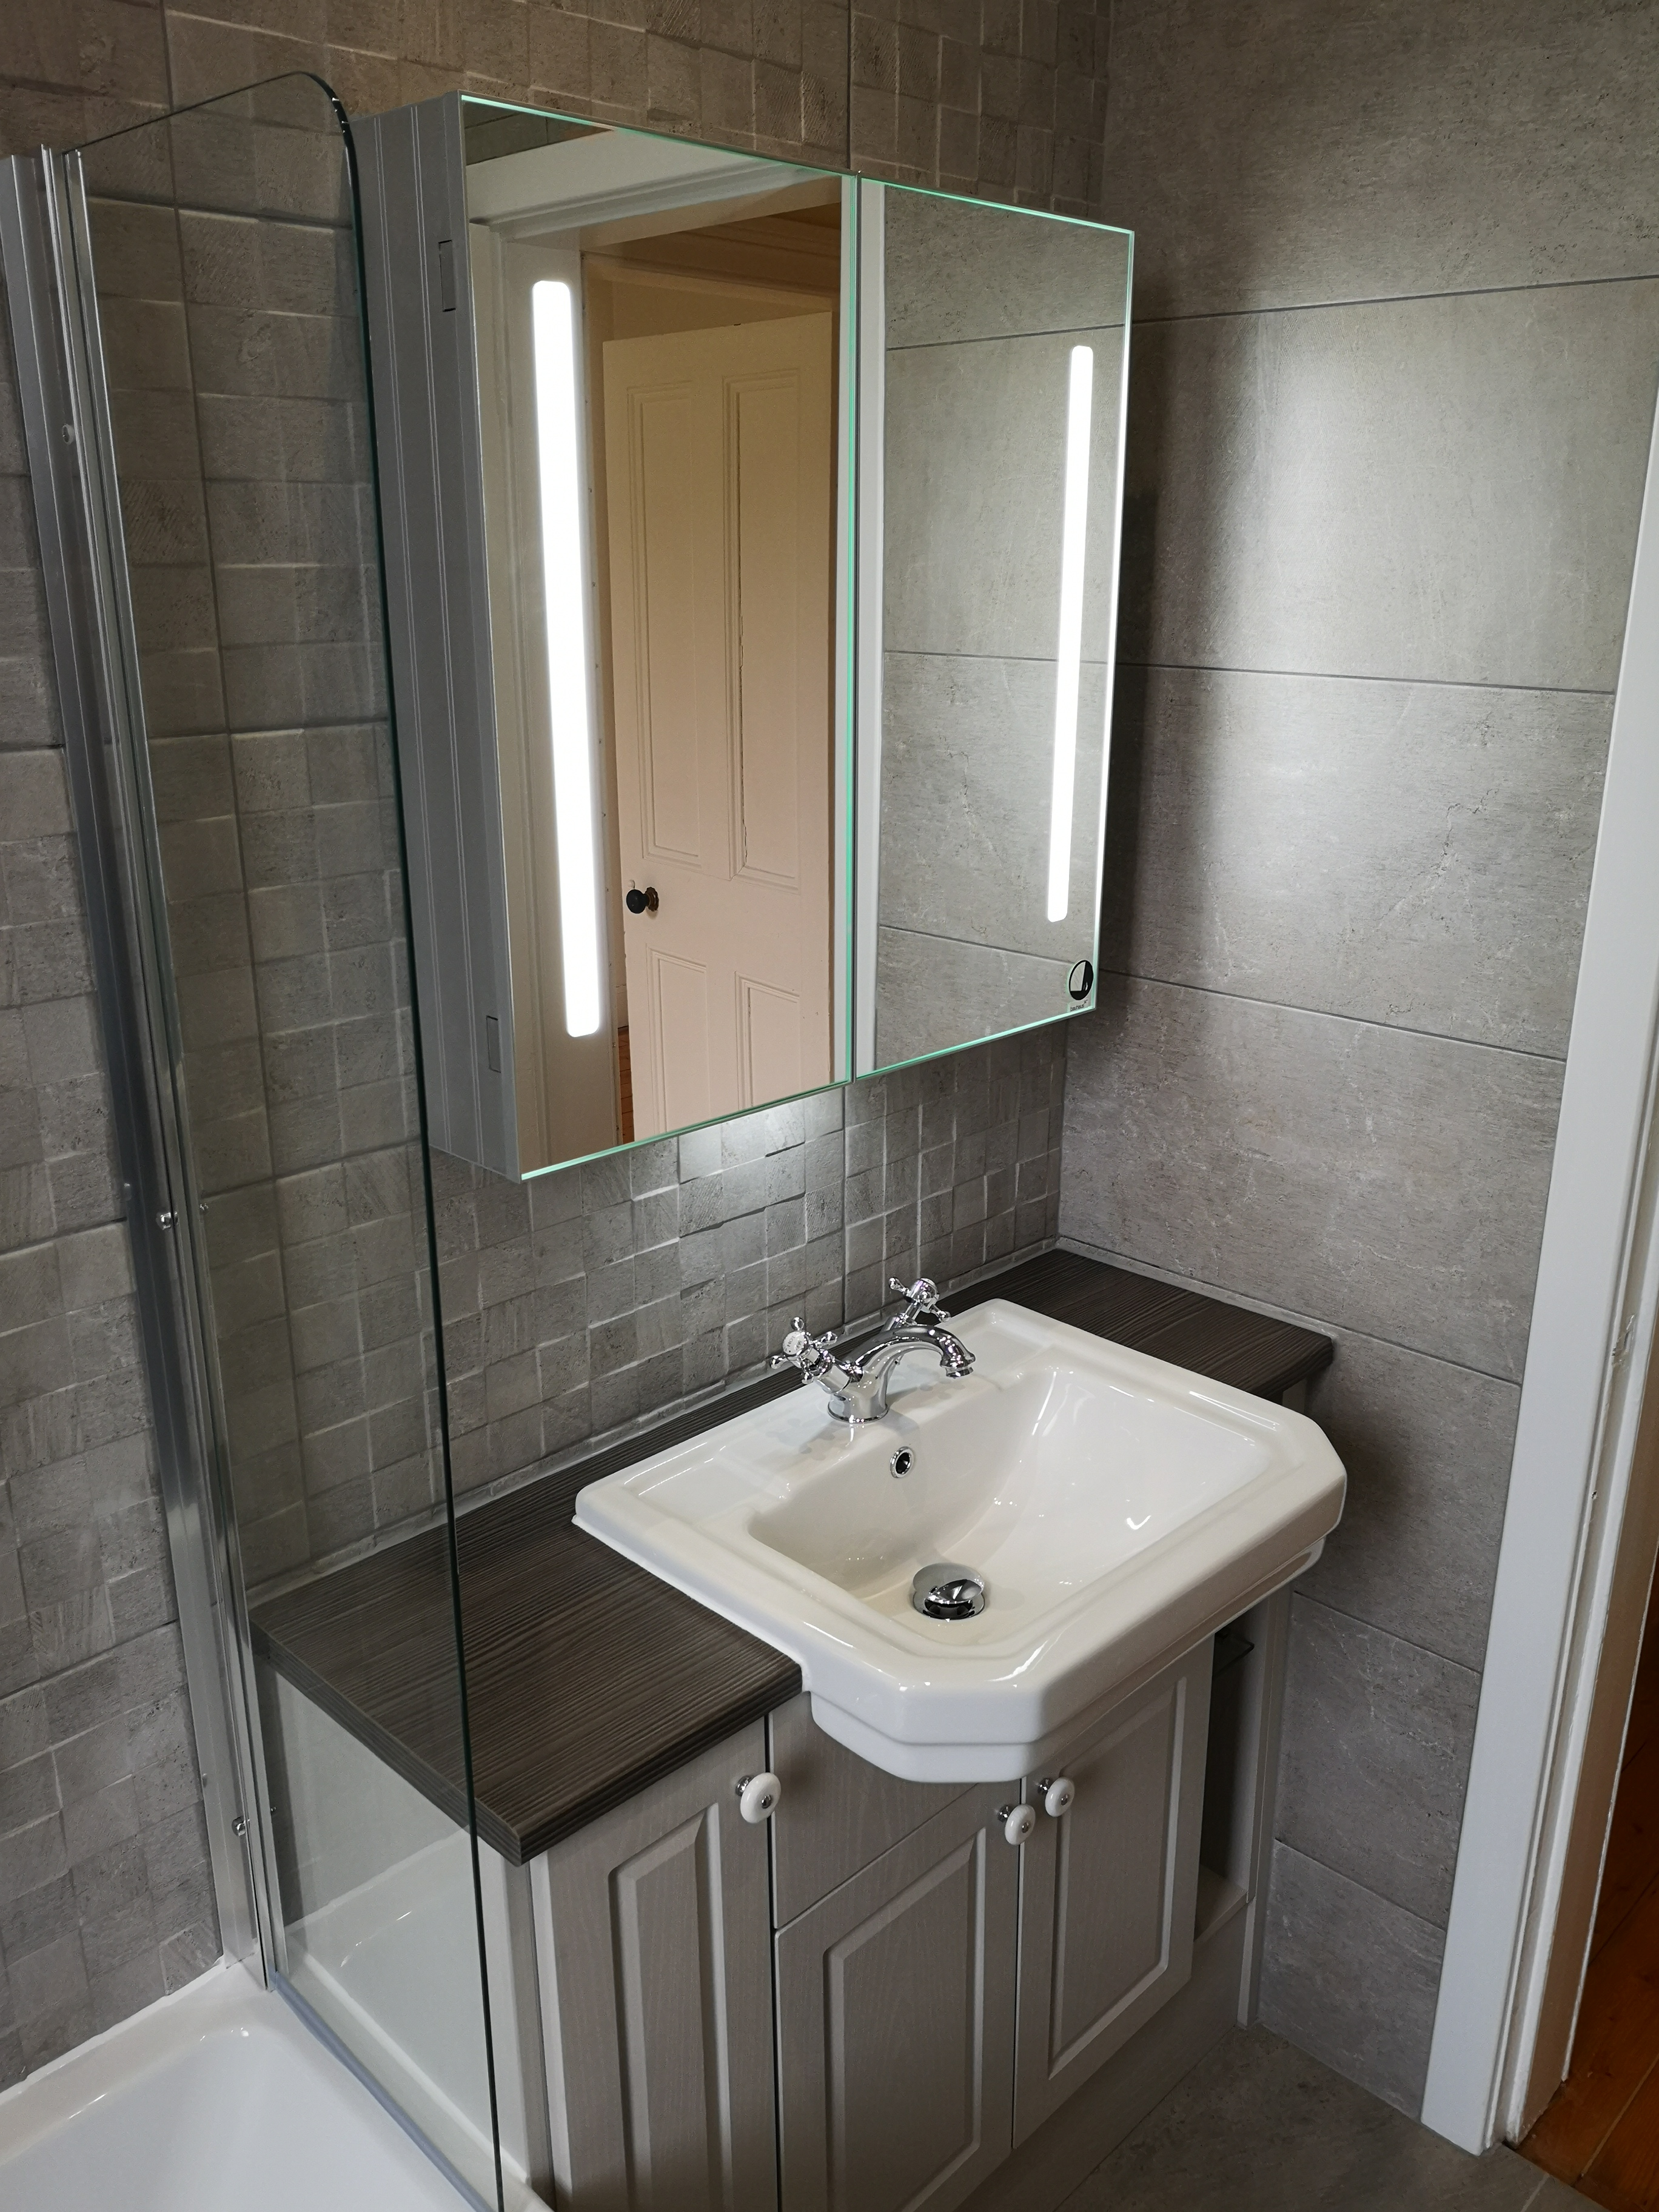 porcelanosa tiles with mosaic texture as feature wall for traditional style vanity unit